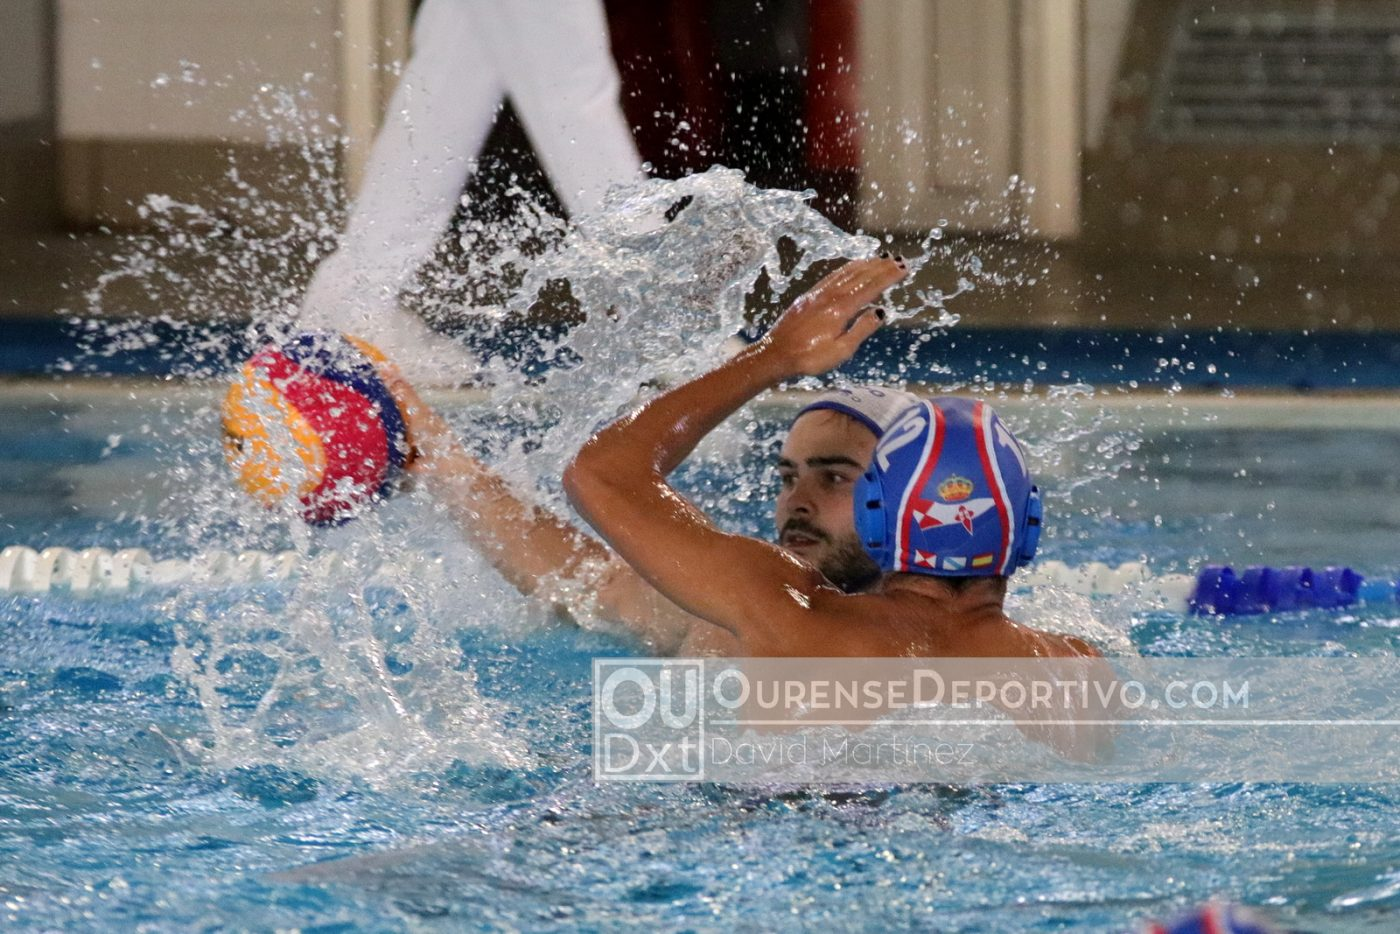 Waterpolo Supercopa Foto David Martinez